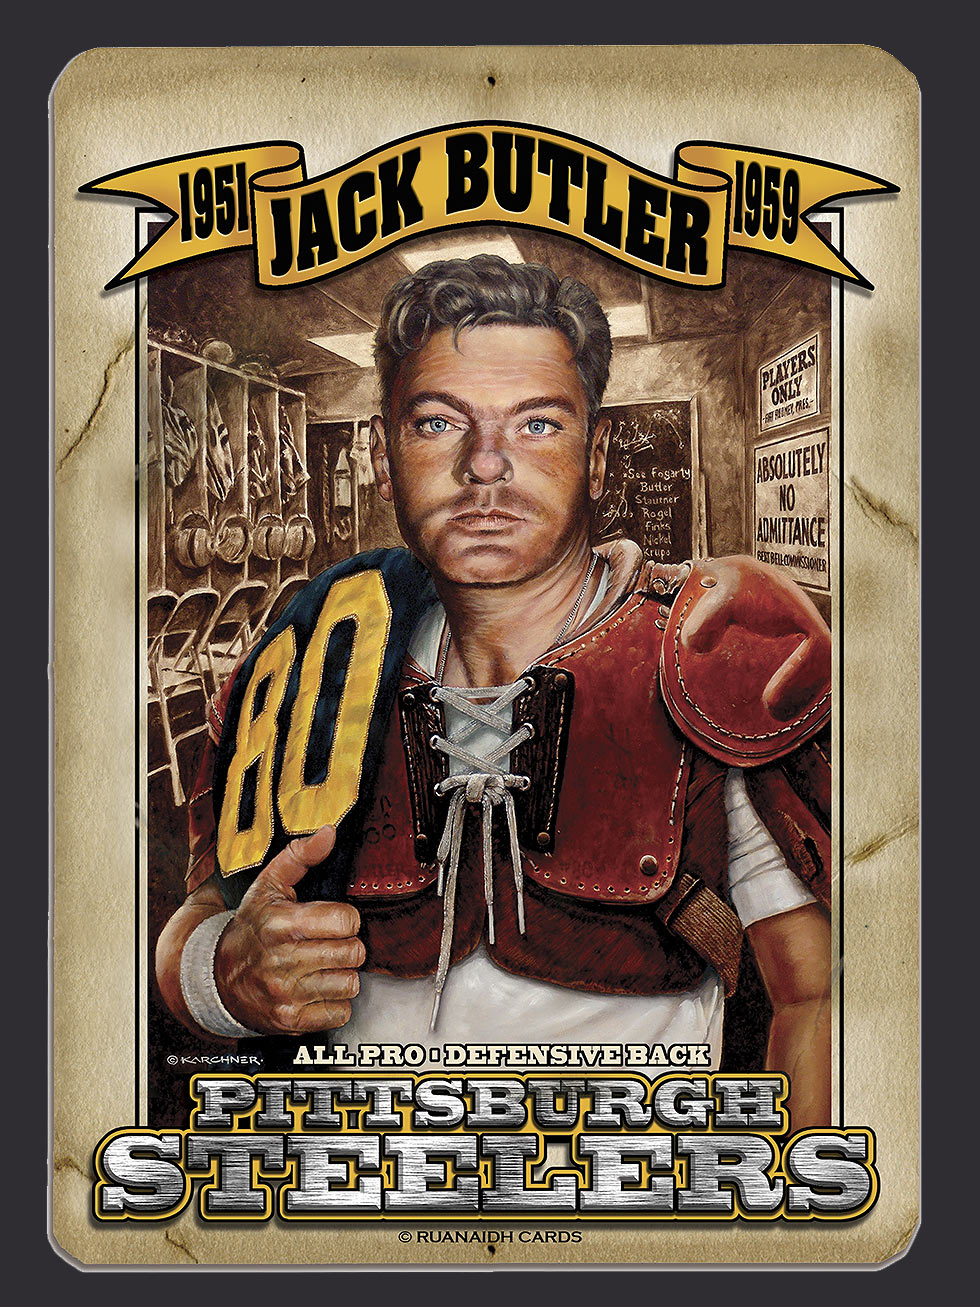 Jack Butler – A Man for all Seasons Locker Room Card